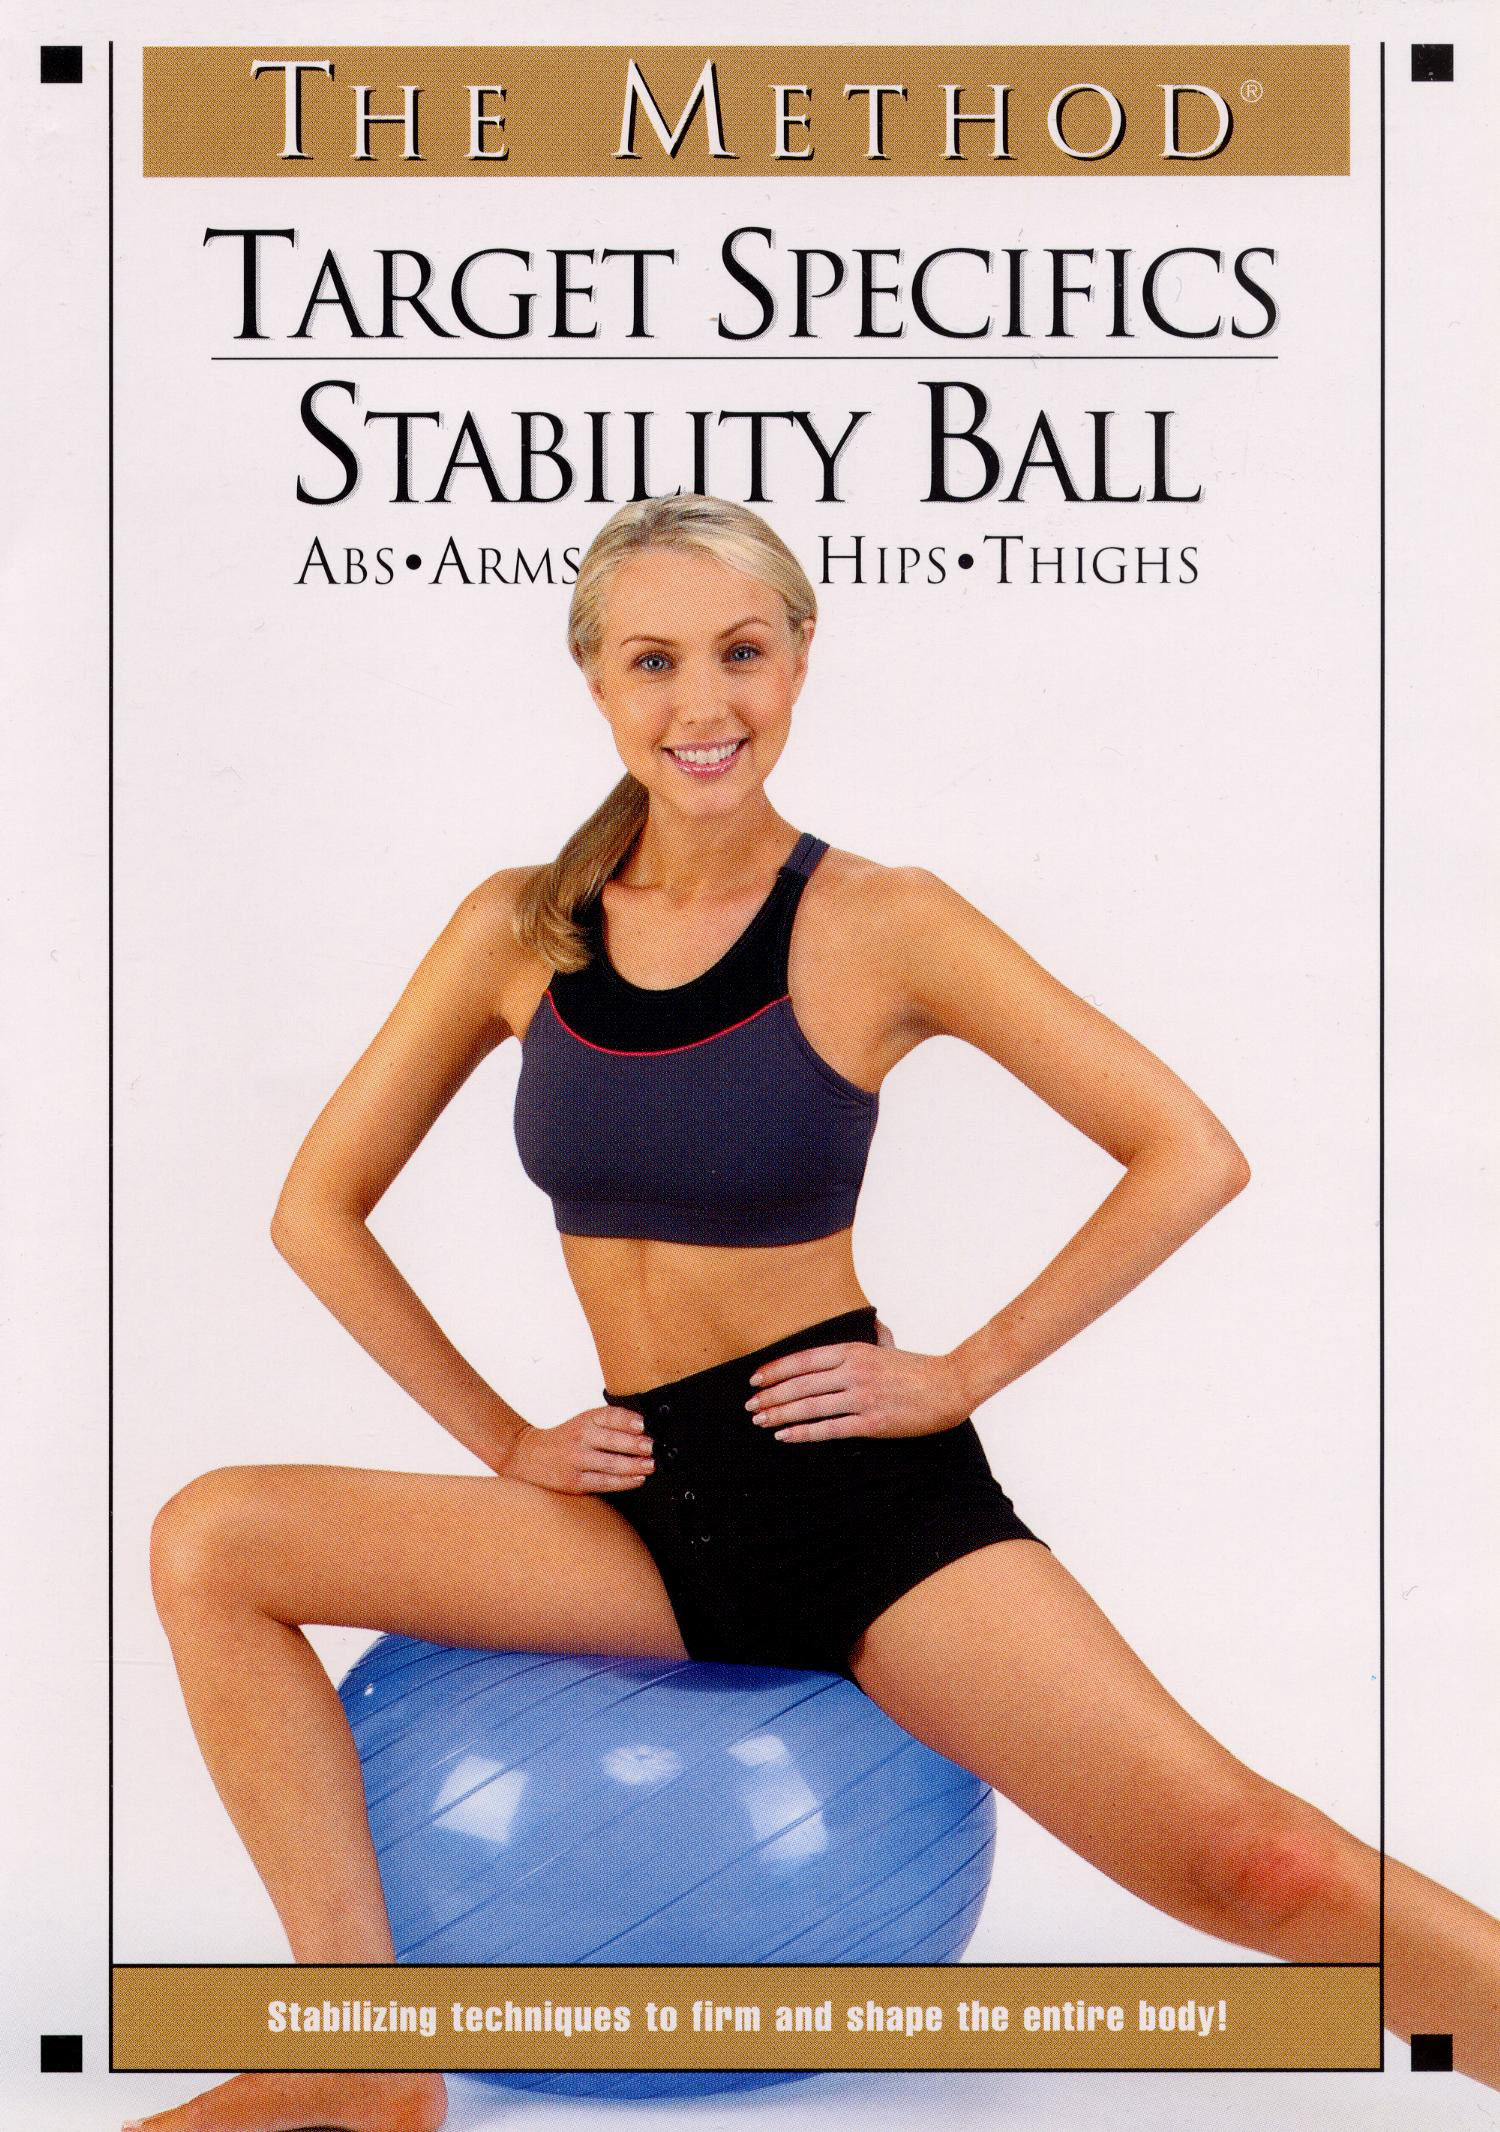 The Method: Target Specifics - Stability Ball